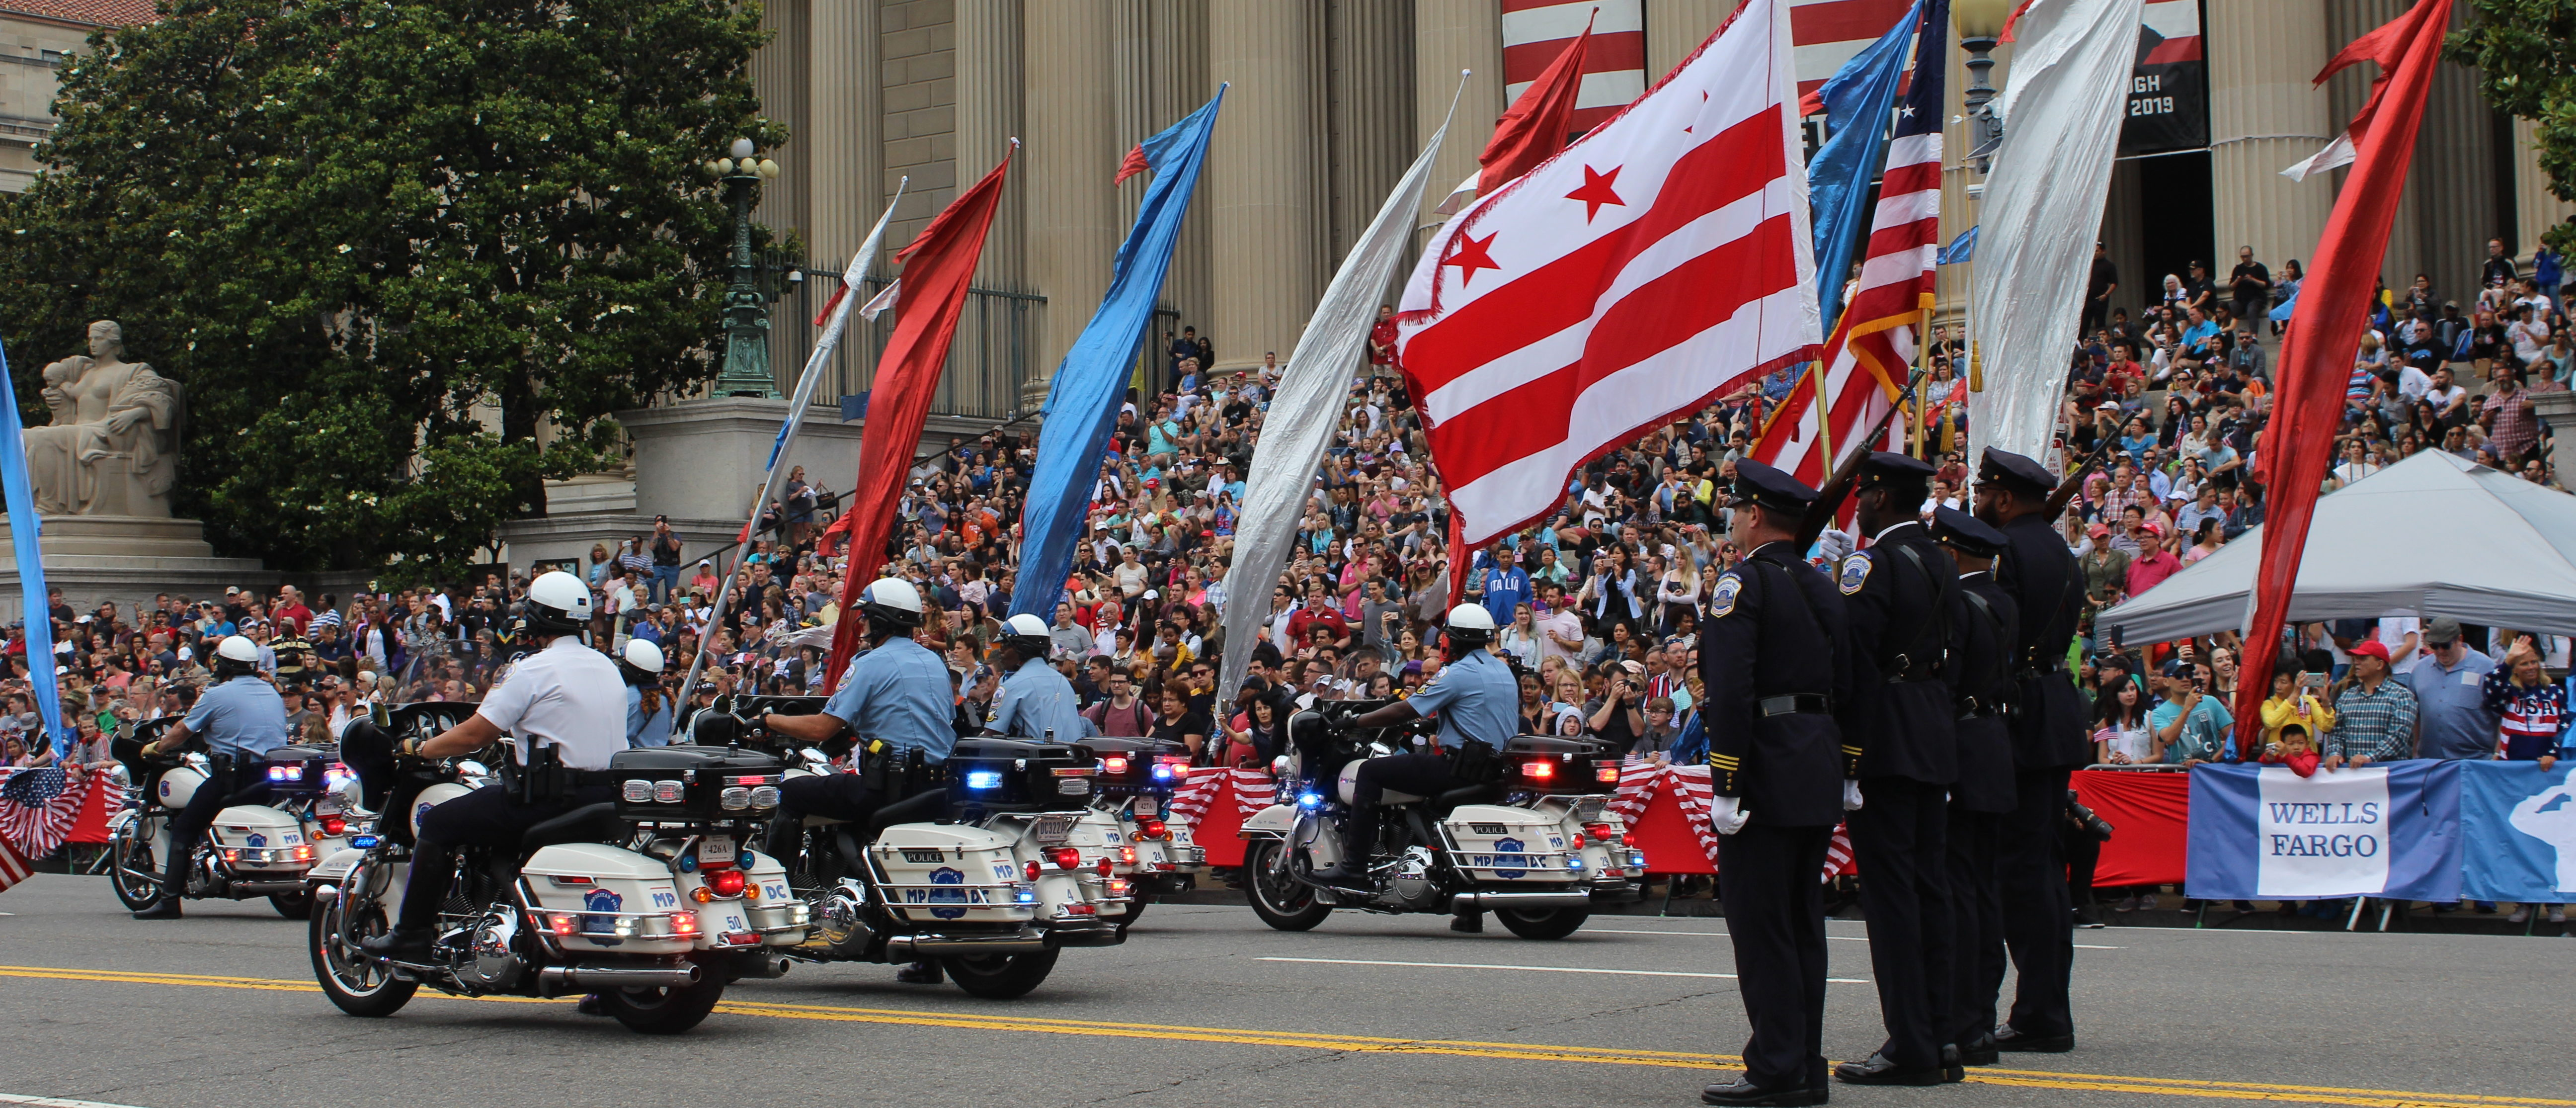 A scene at the 2018 National Memorial Day Parade in Washington, D.C. (Julia Nista/The Daily Caller)